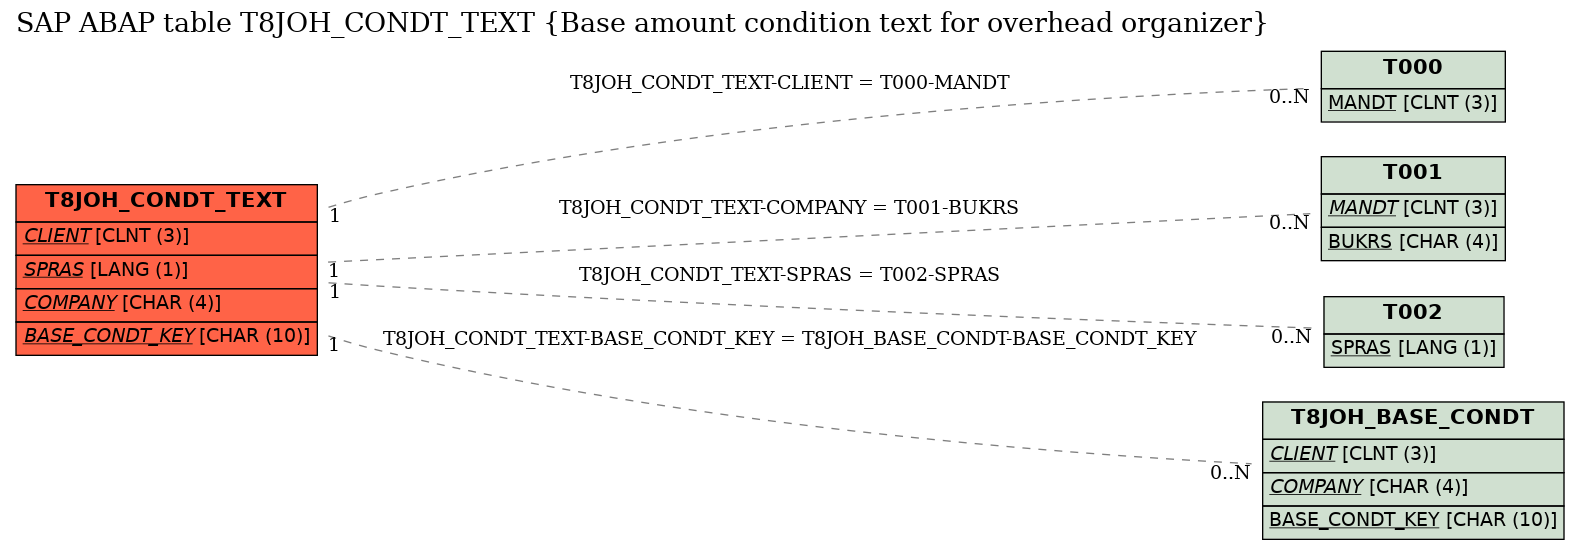 E-R Diagram for table T8JOH_CONDT_TEXT (Base amount condition text for overhead organizer)